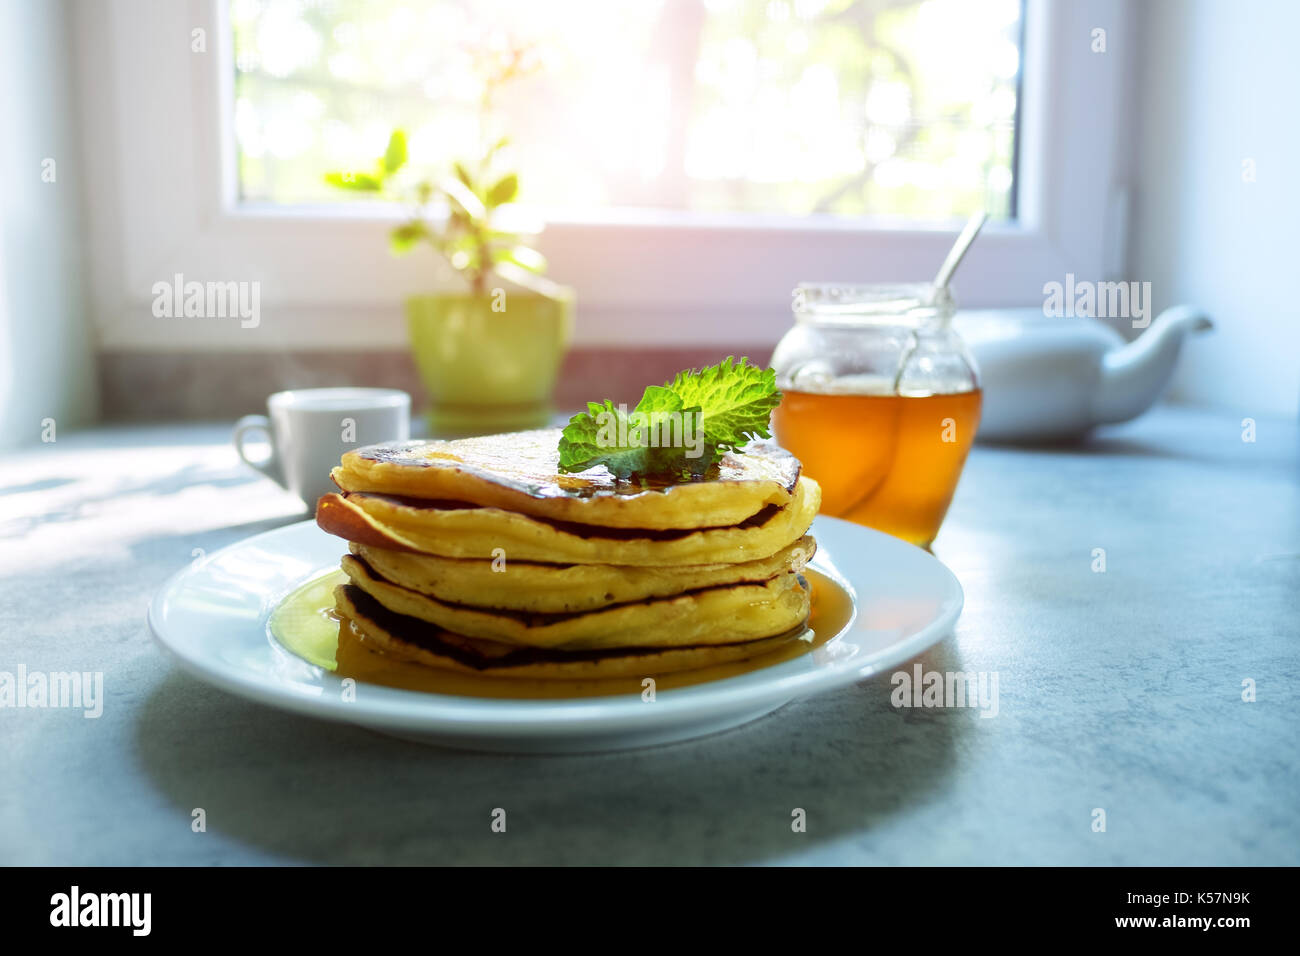 Pancakes heap with sprig of mint and maple syrup - Stock Image